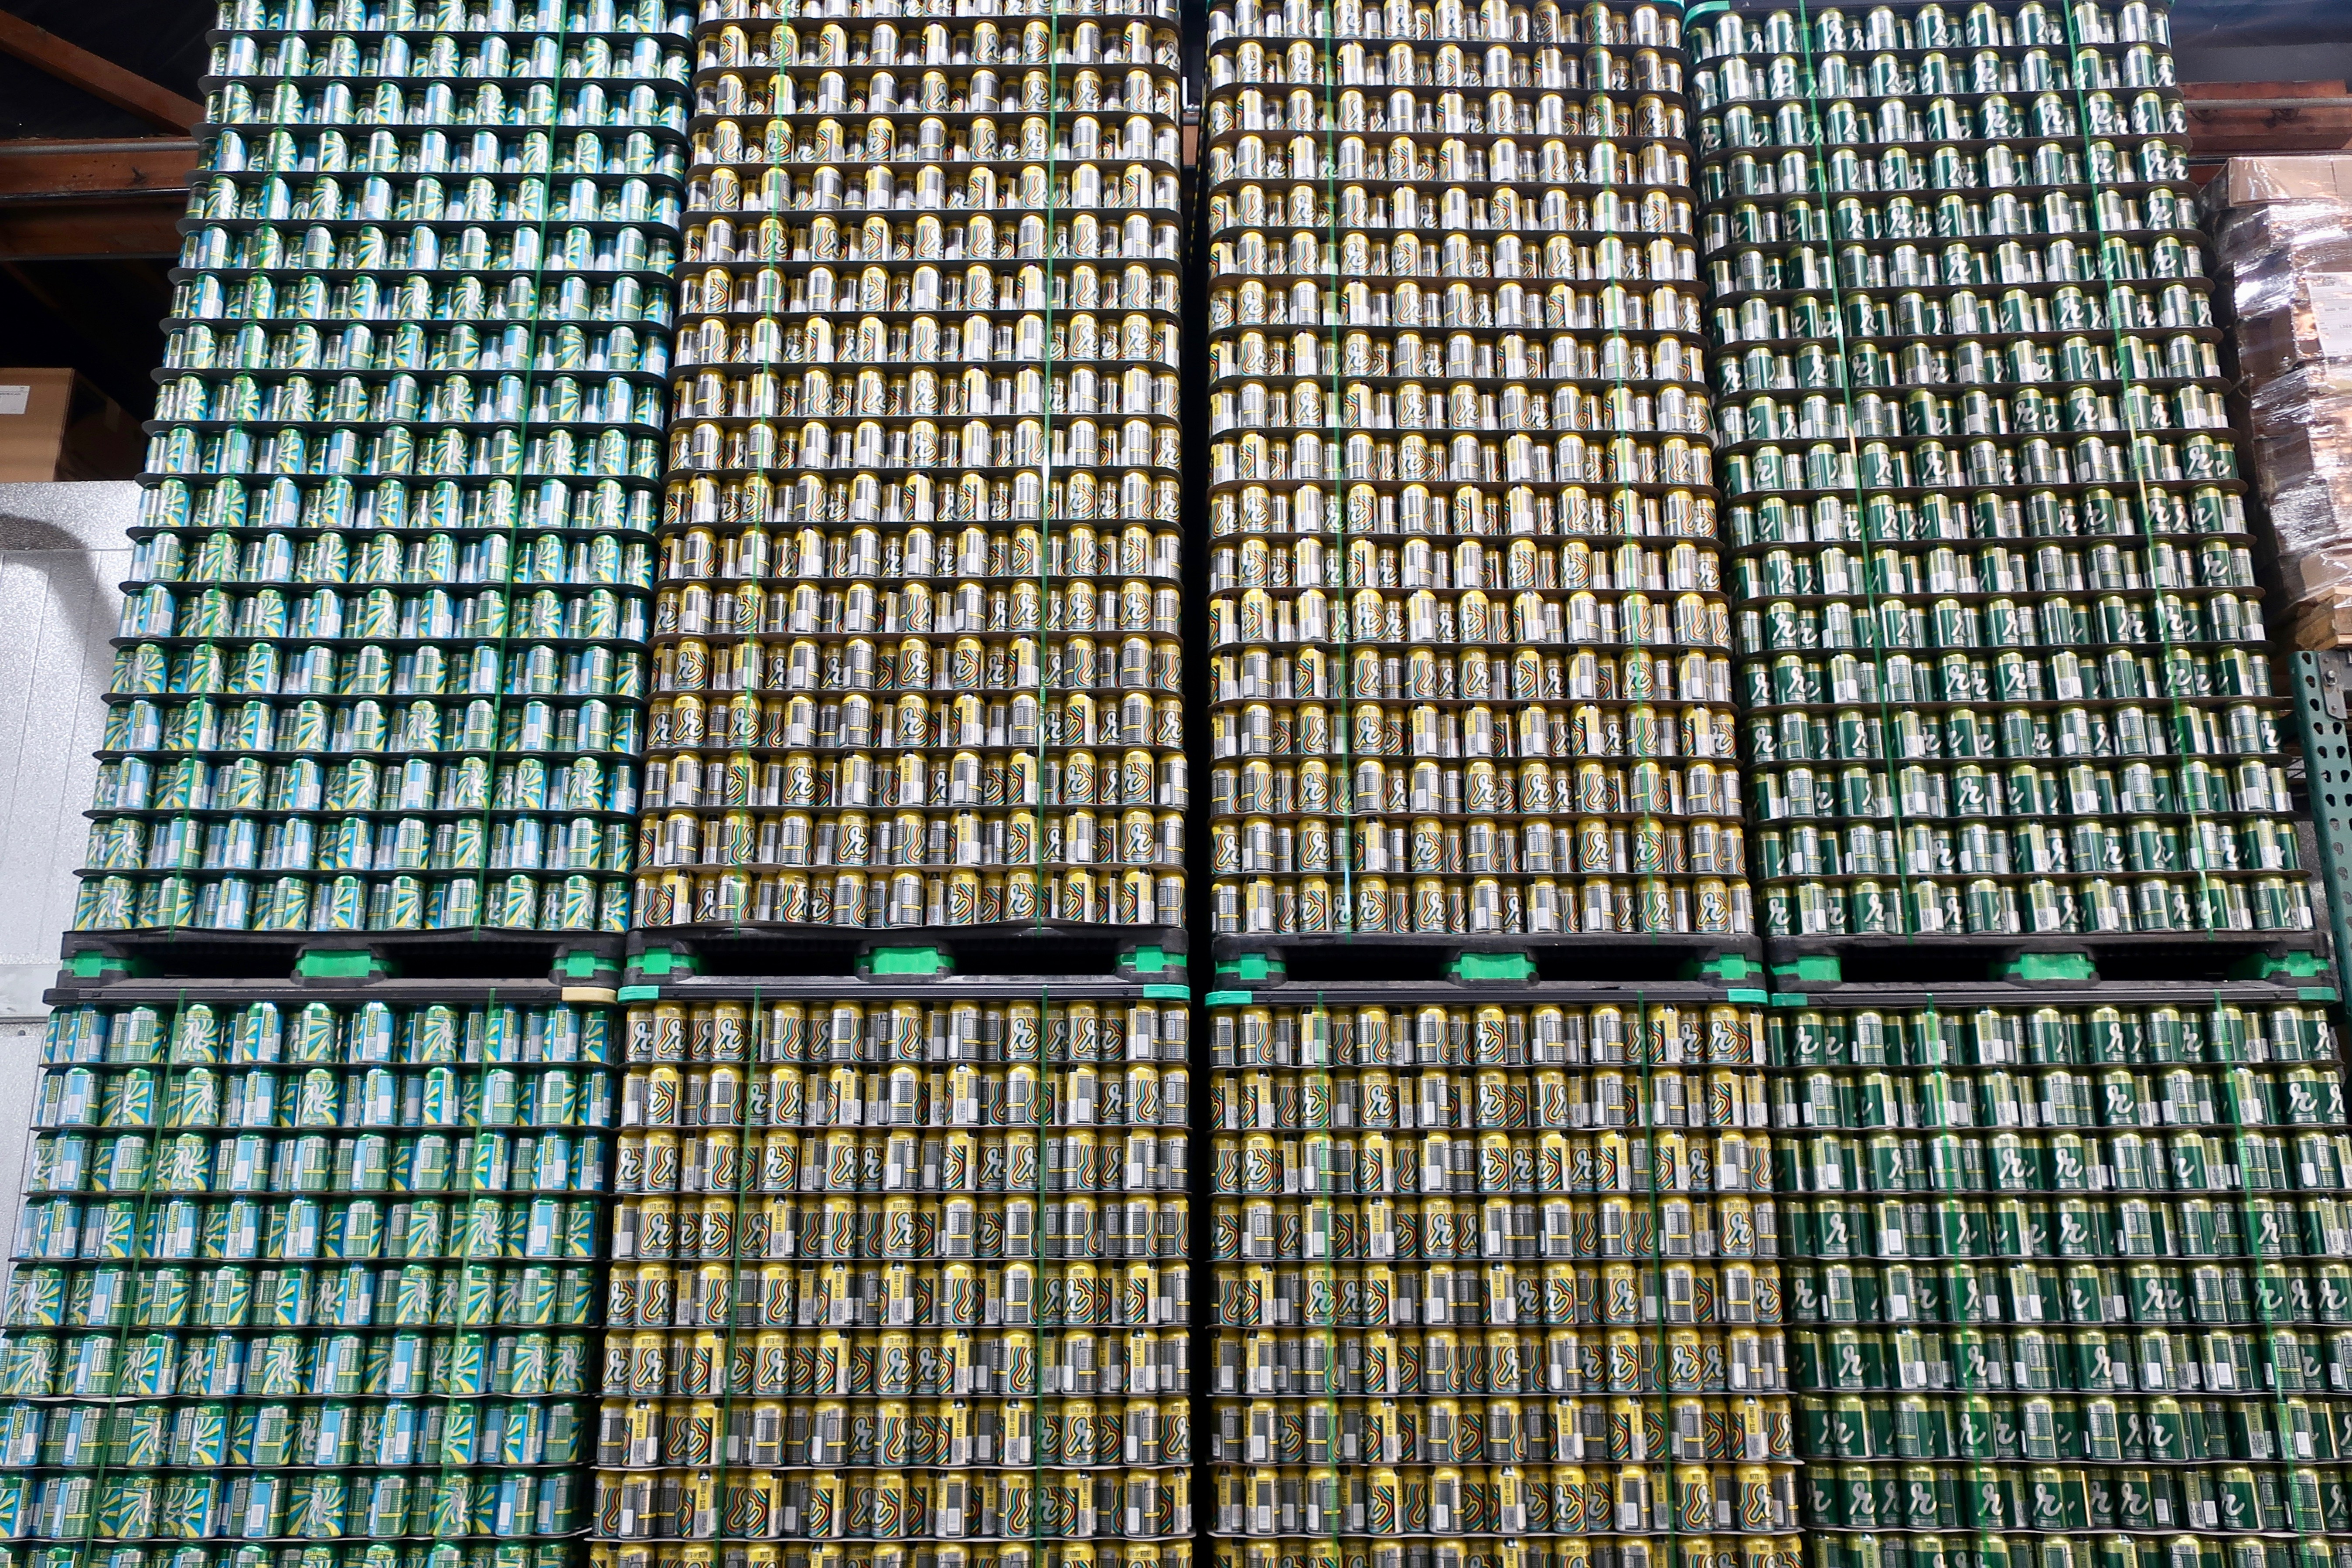 Lots and lots of empty cans fill any vacant space inside the Brewtap, Reuben's Brews new production brewery.